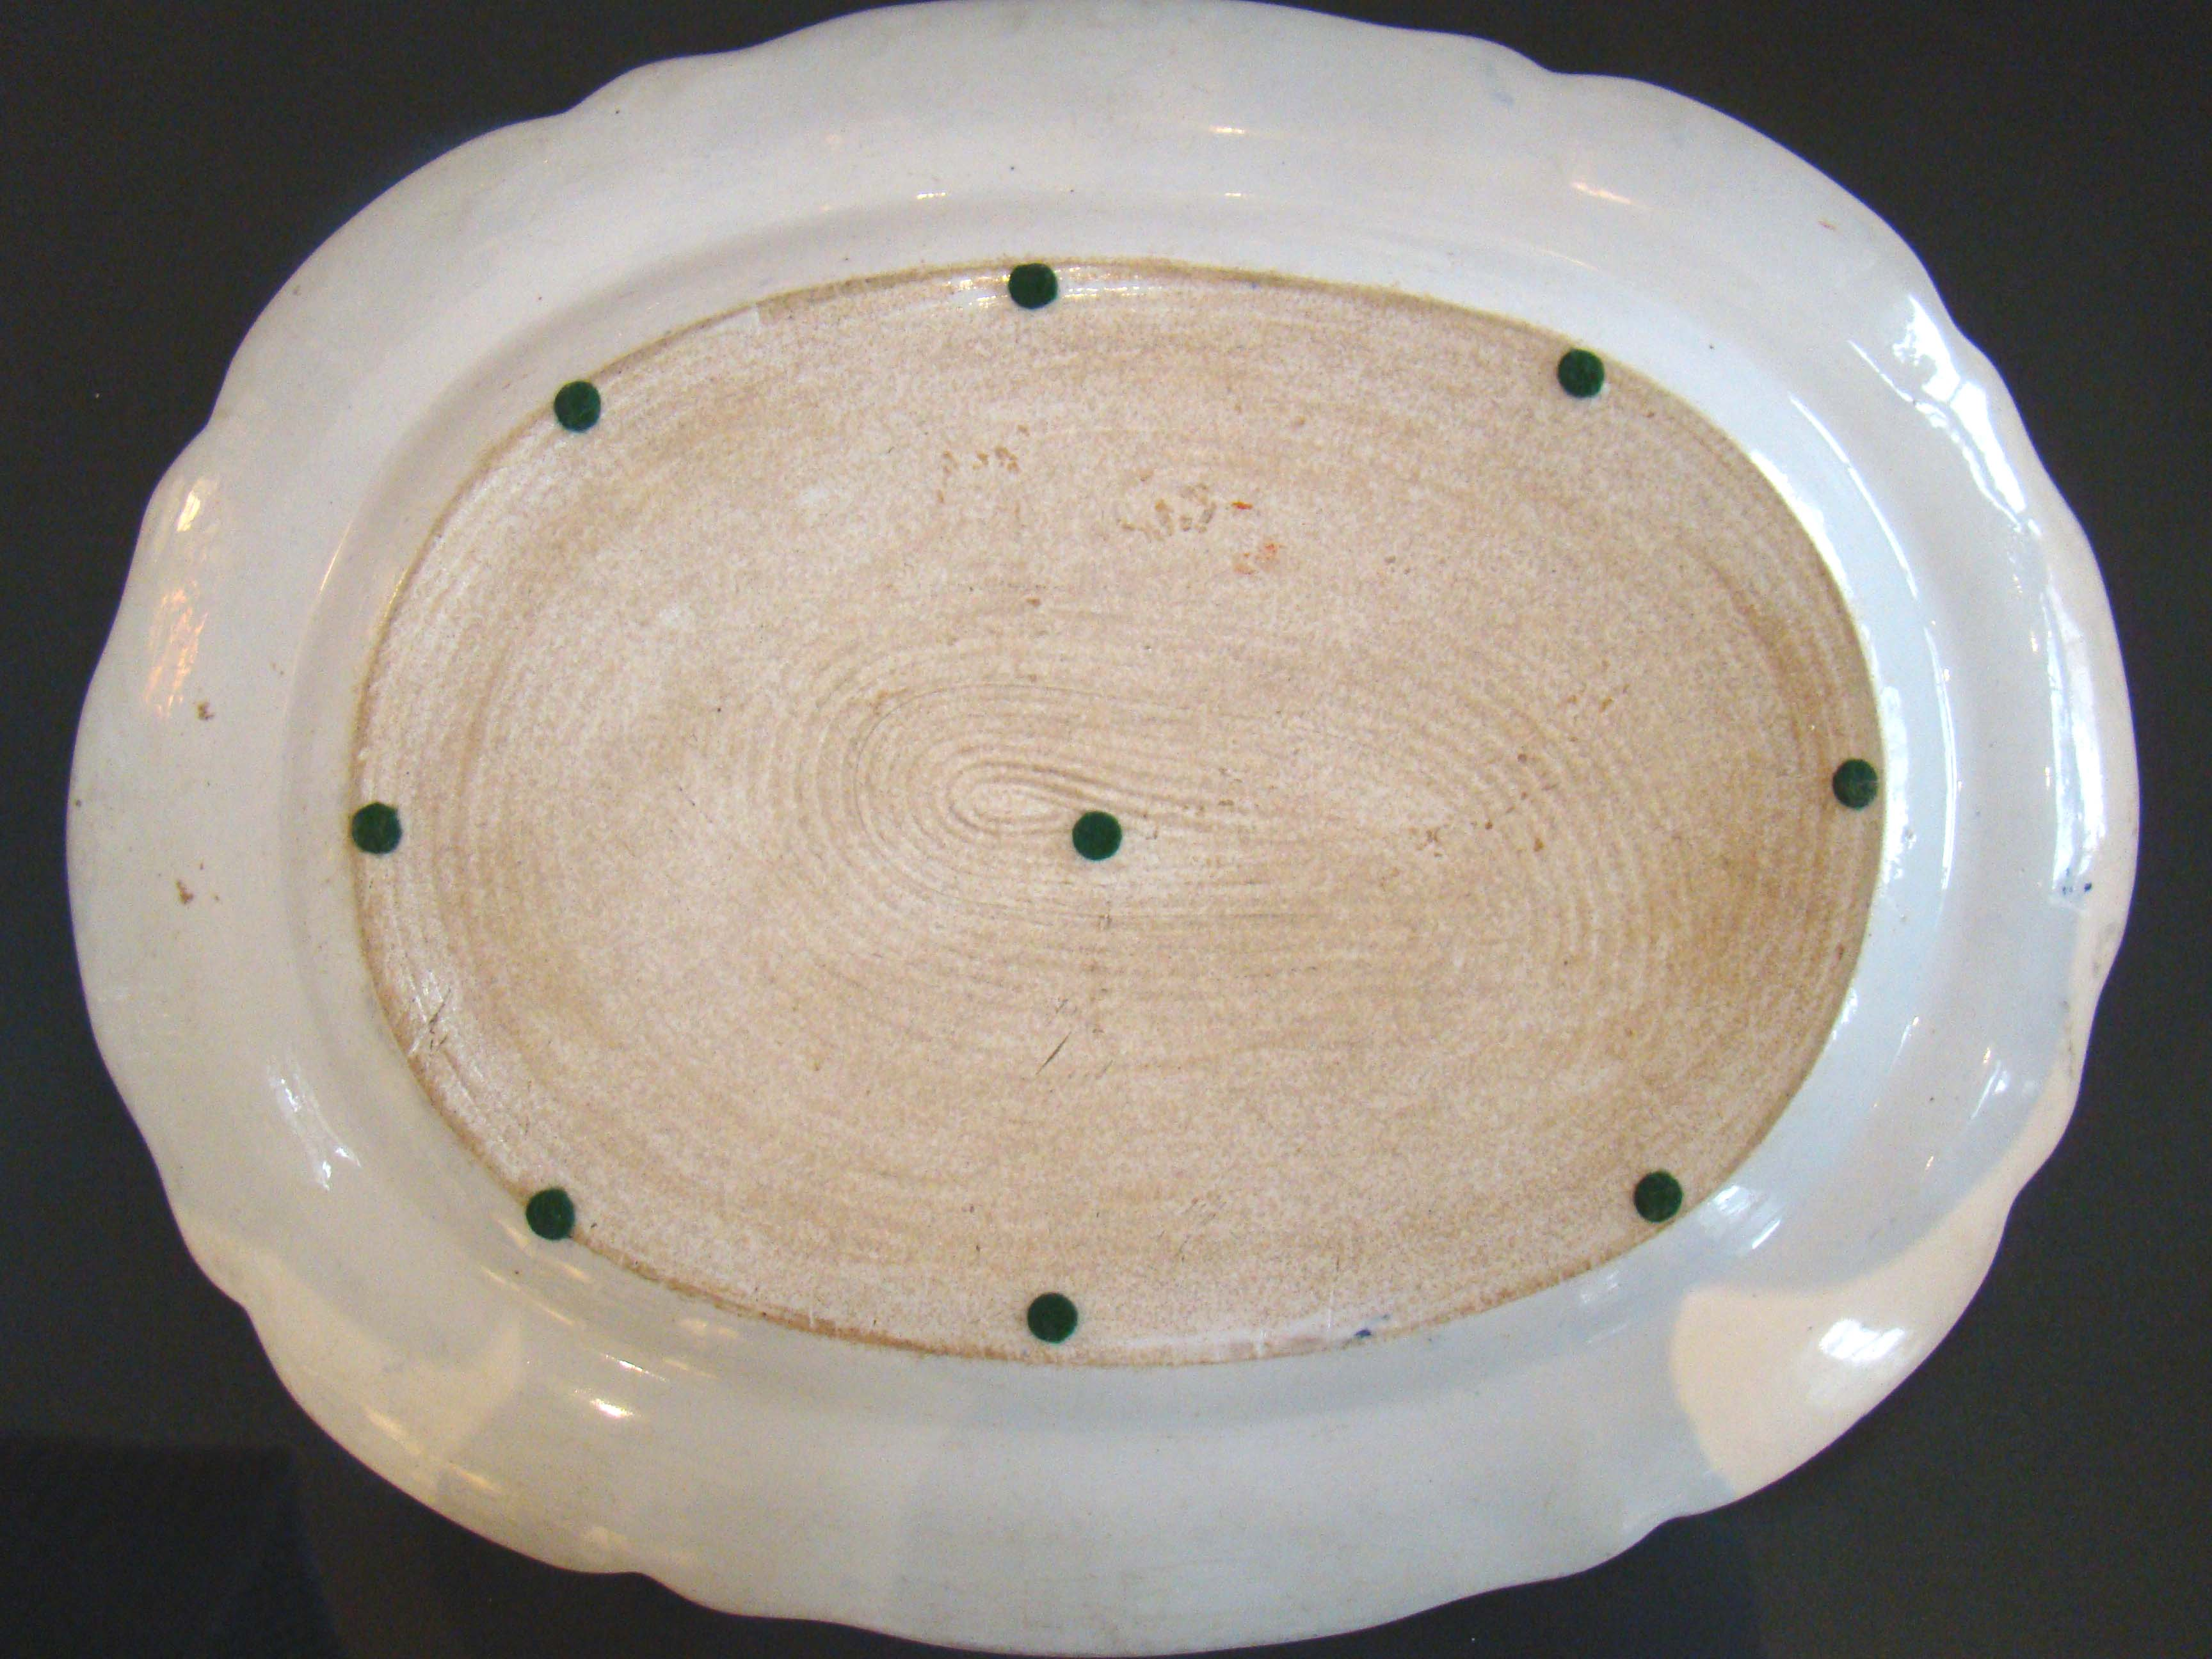 click to view larger image of An early 19th century Mason's Stoneware serving Platter in the Japan Basket pattern circa 1820